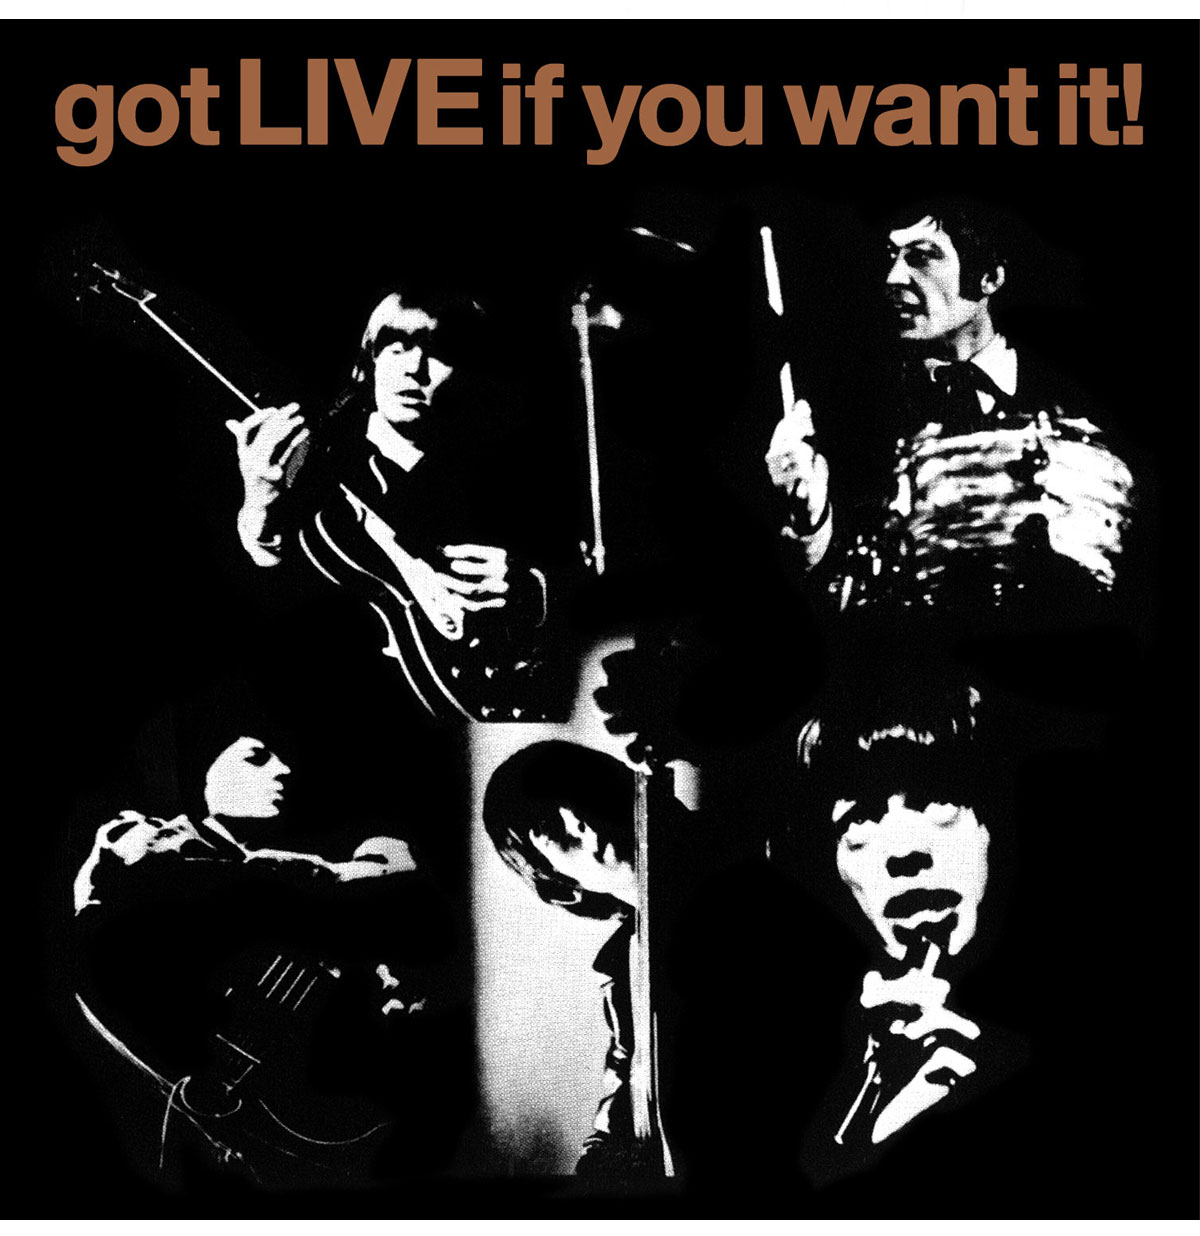 Rolling Stones - Got LIVE if you want it EP - RSD 2014